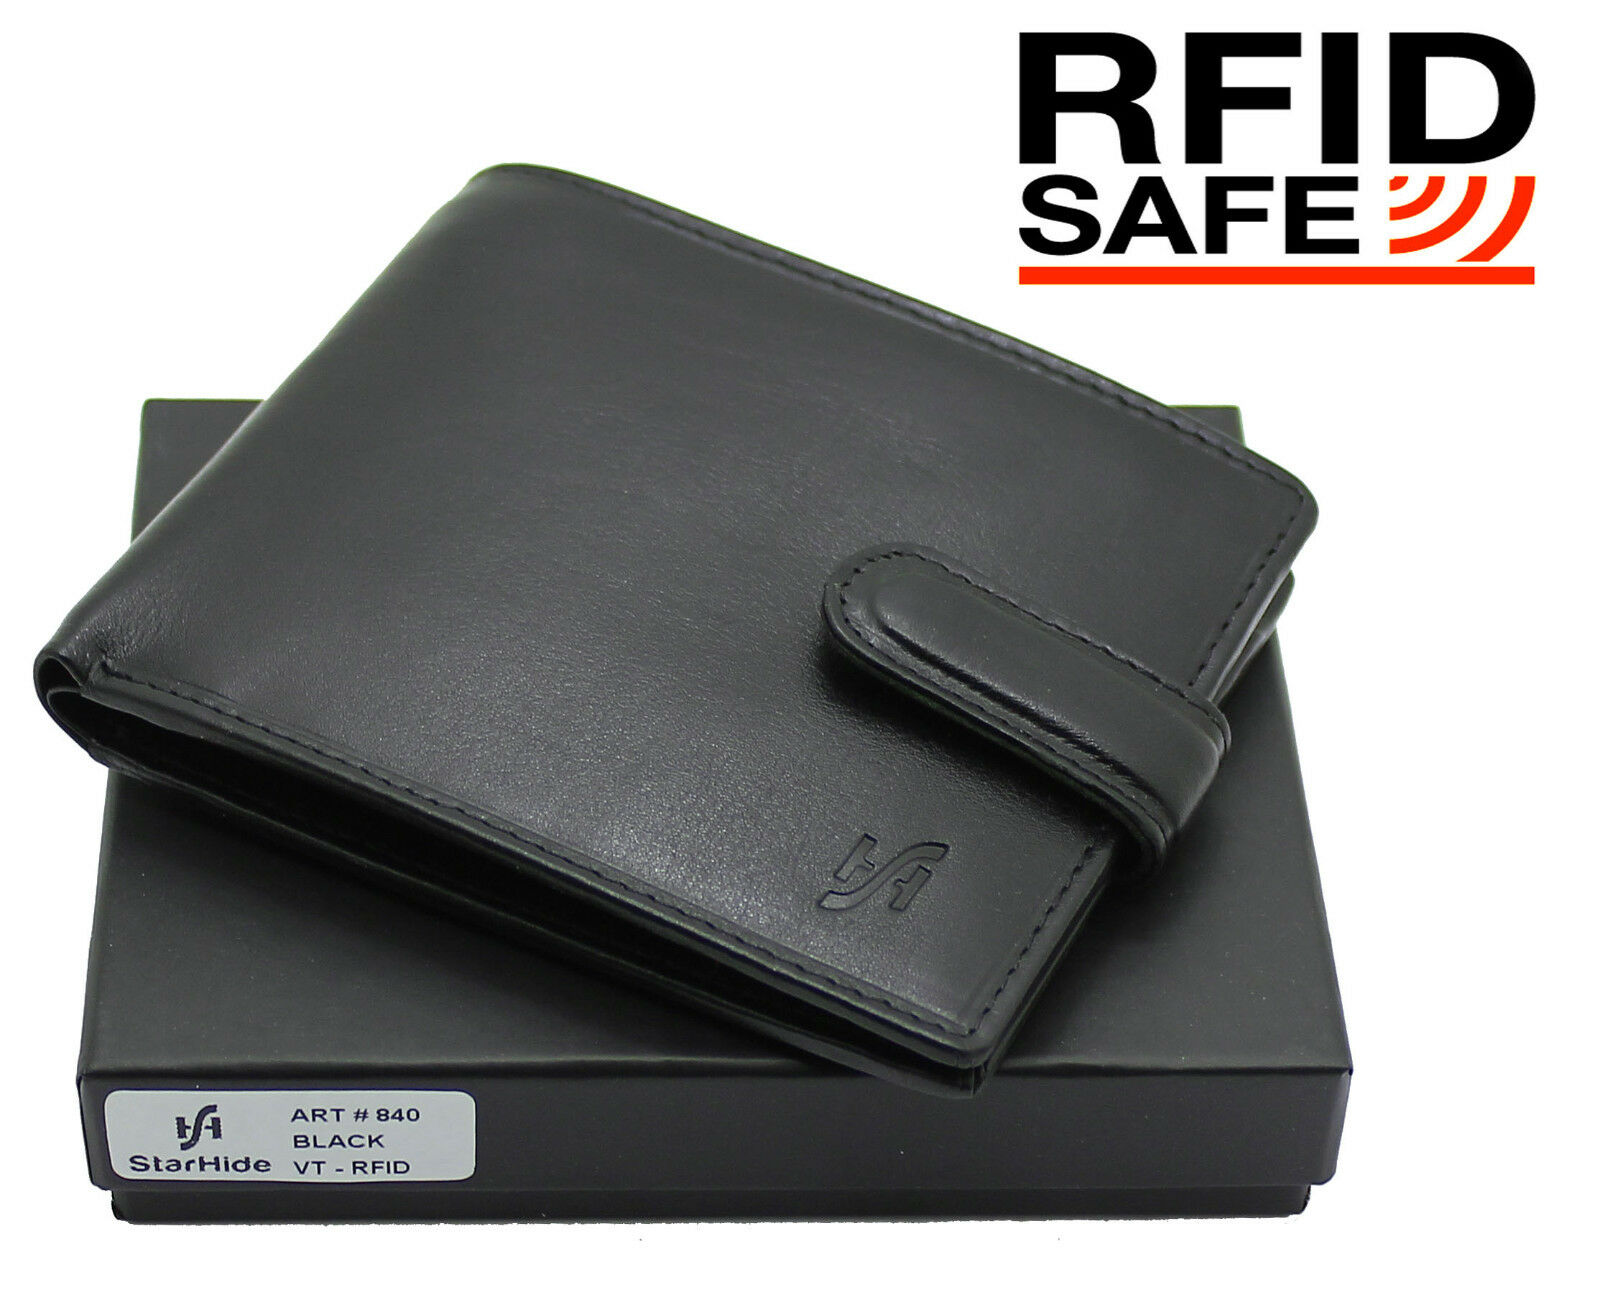 Mens RFID Blocking VT Leather Billfold Wallet Black